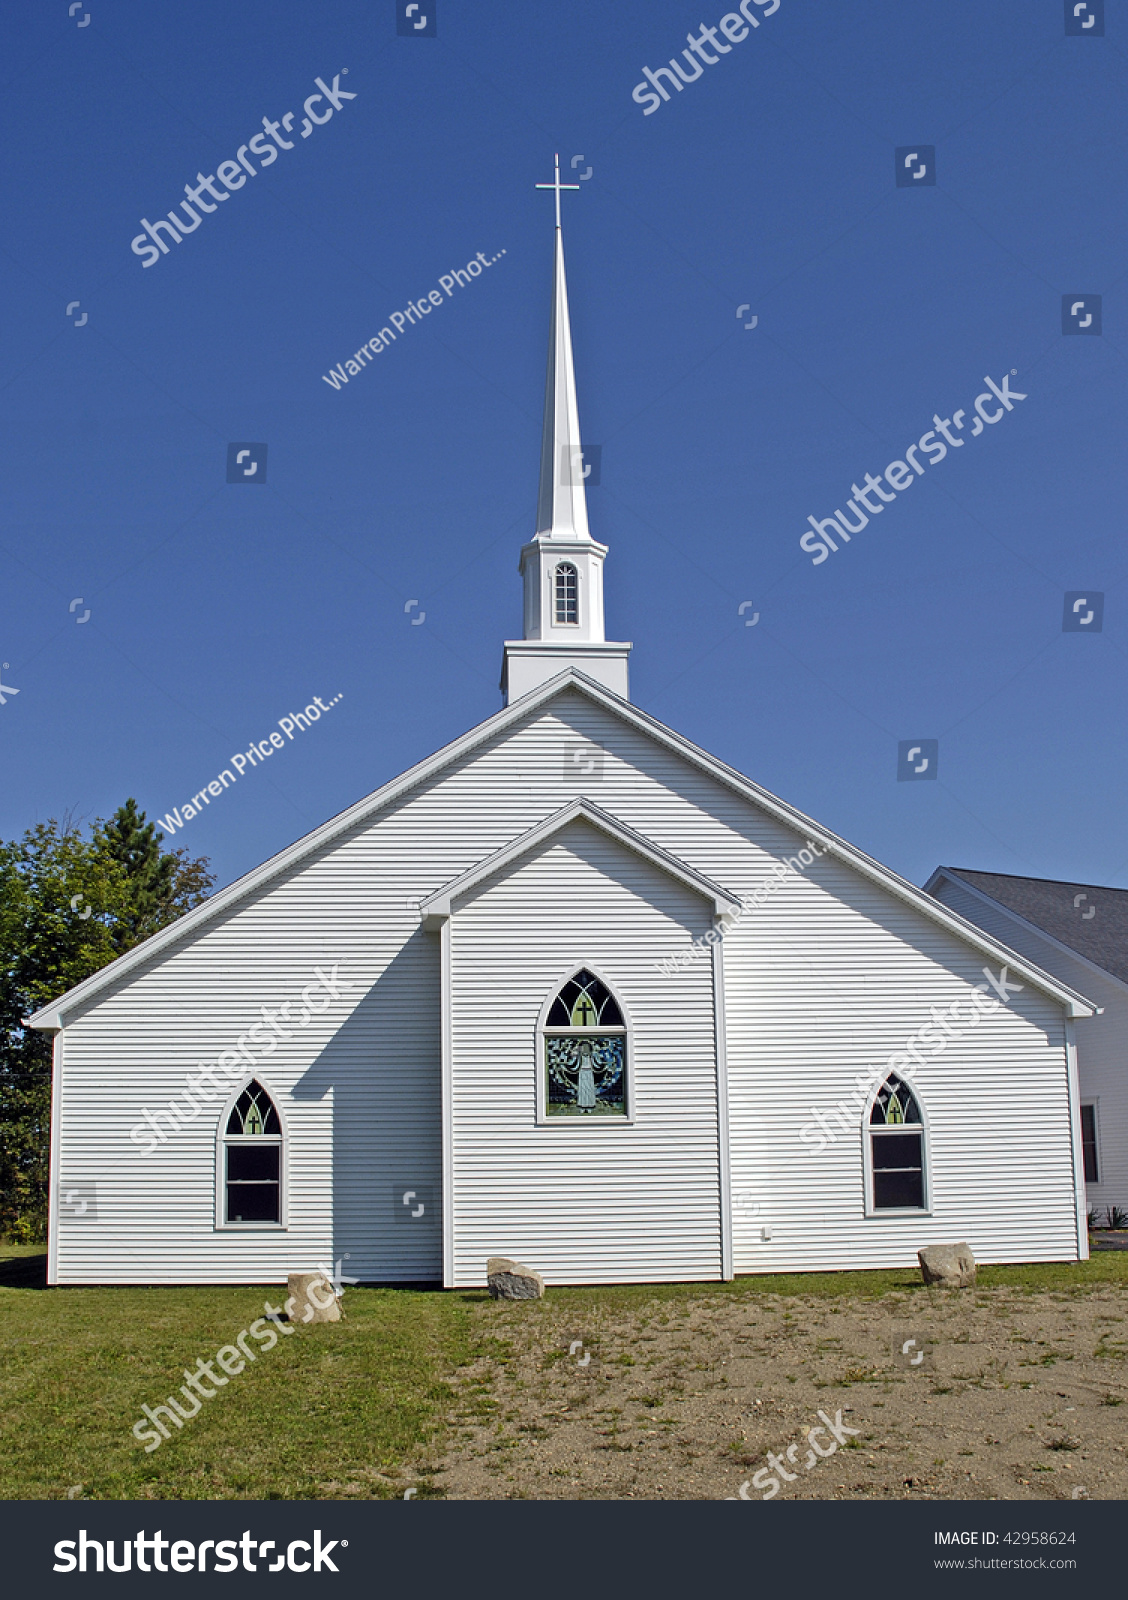 White Wood Siding Presbyterian Church And Steeple Against